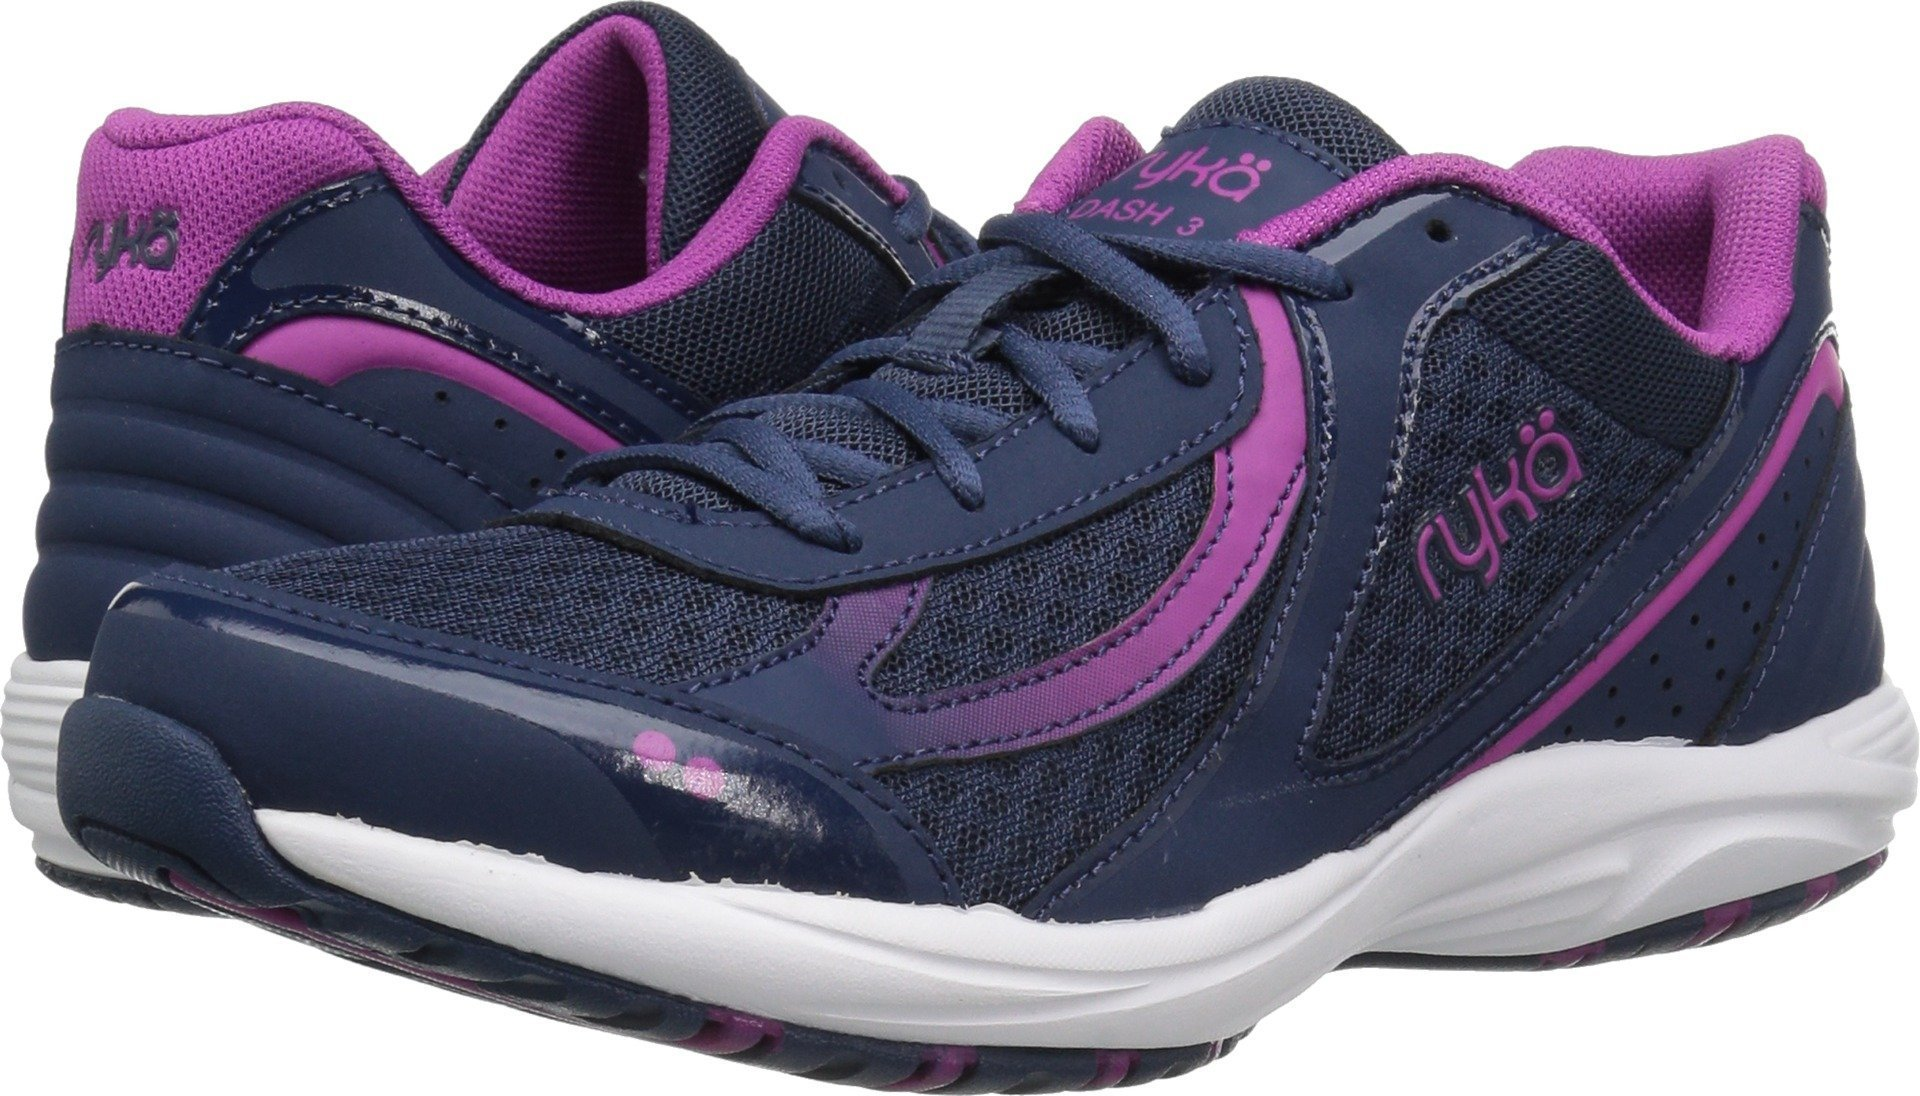 Ryka Women's Dash 3 Walking Shoe, Navy/Pink, 7.5 M US